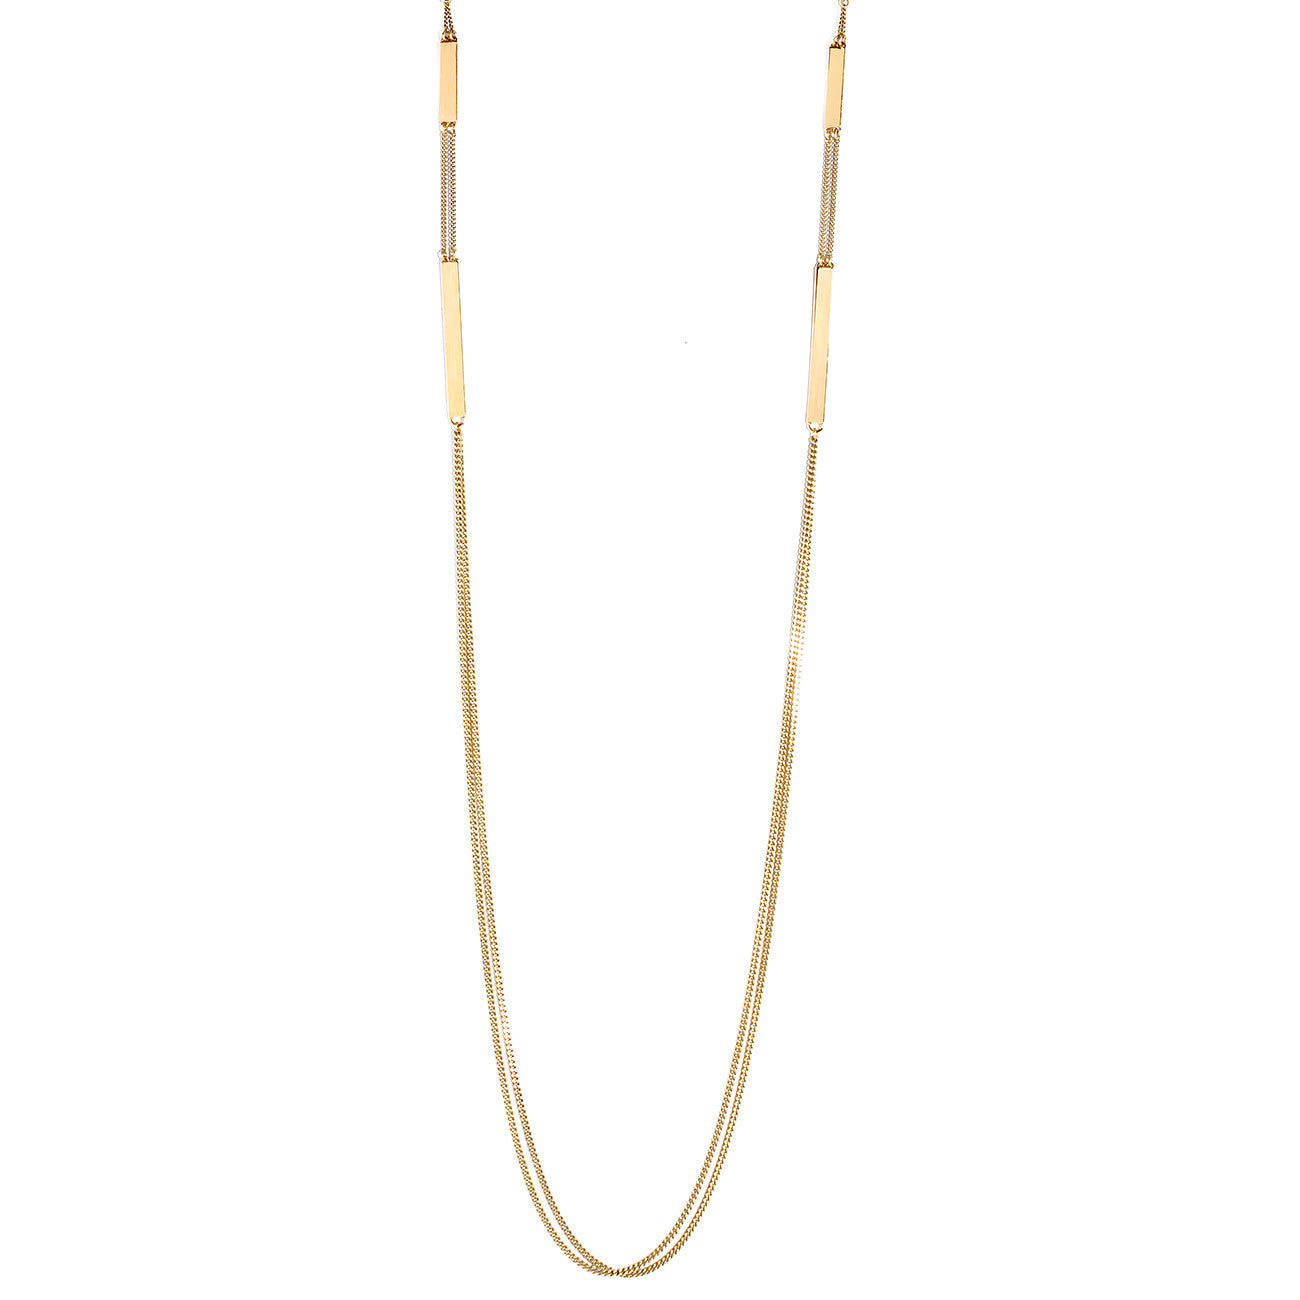 Jenny Bird Zenith Chain Necklace in High Polish Gold